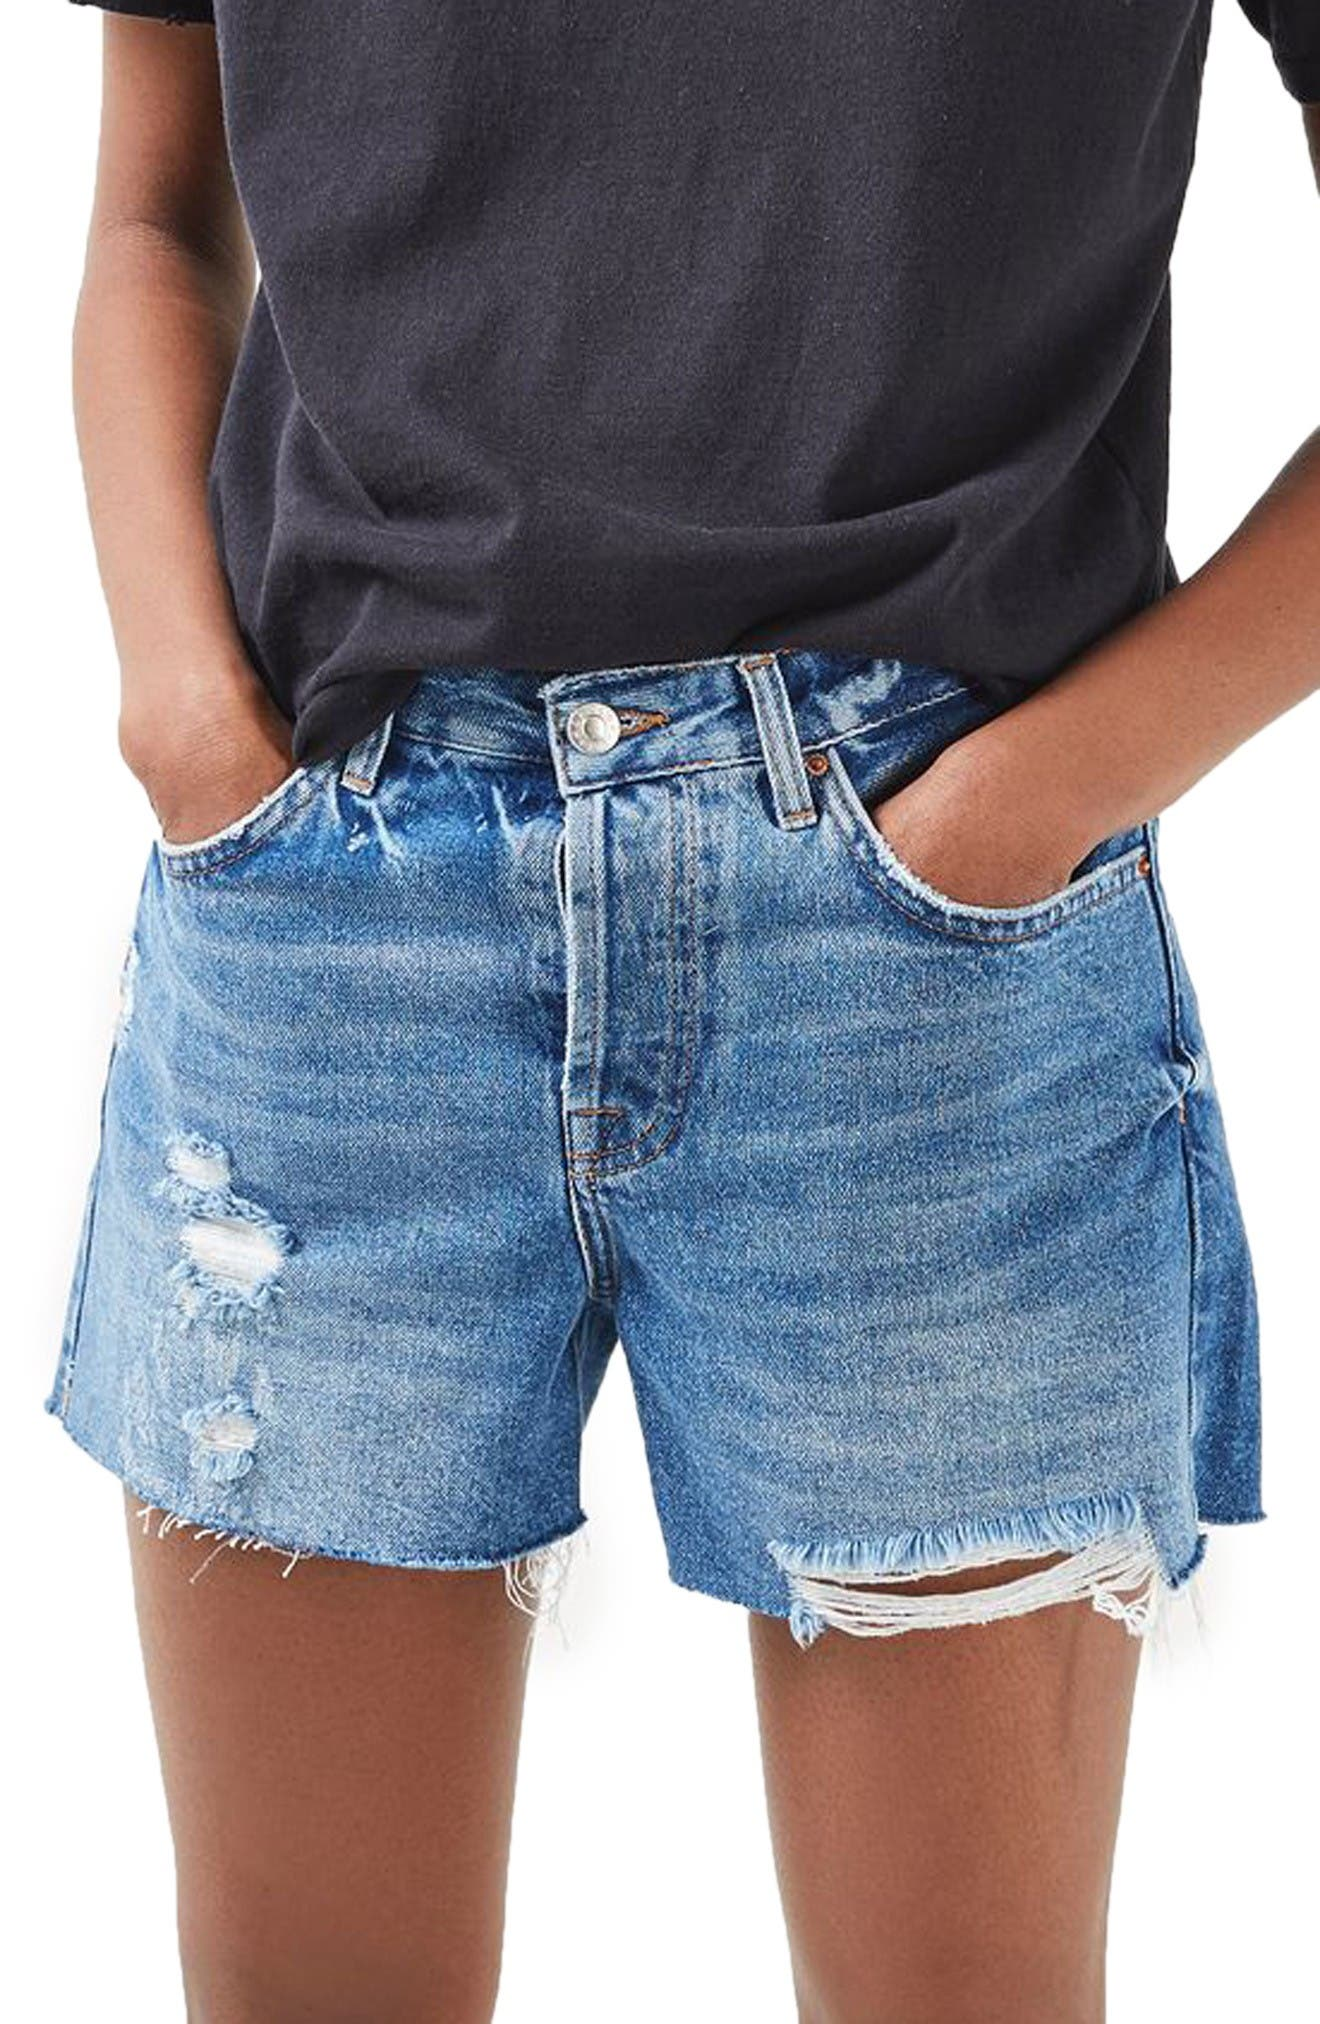 Alternate Image 1 Selected - Topshop Ashley Ripped Boyfriend Shorts (Regular & Petite)